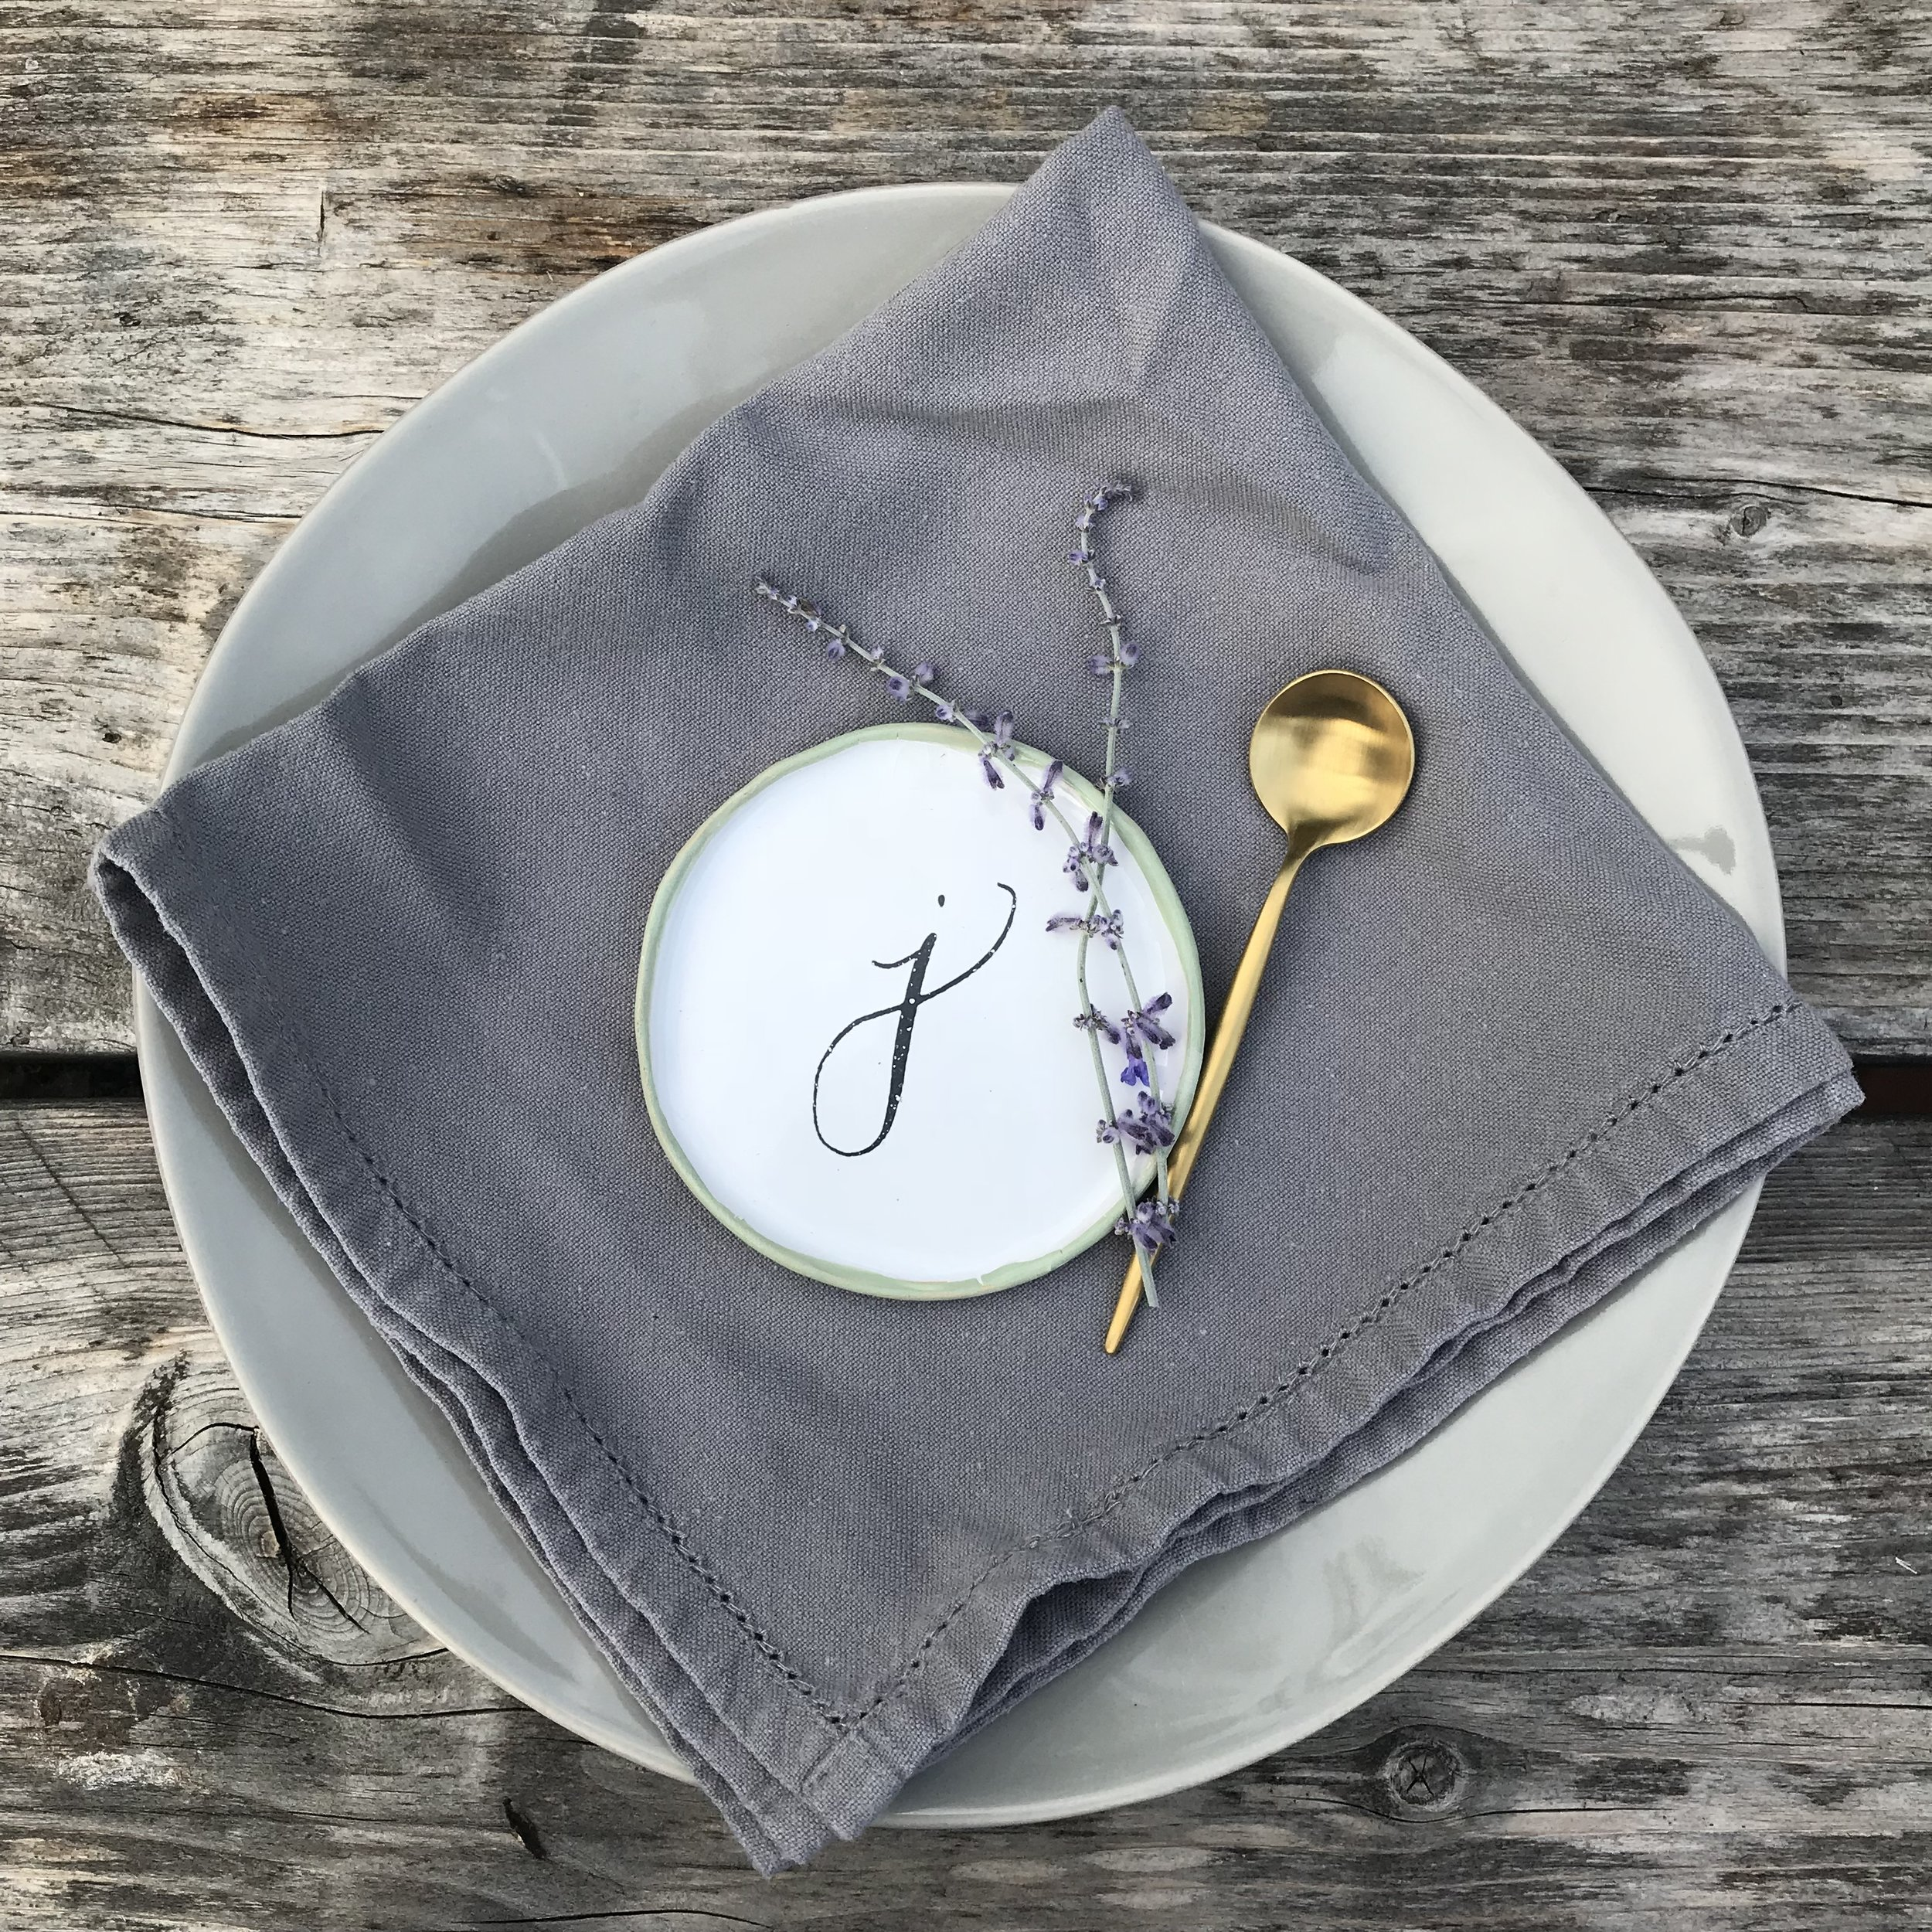 Trinket plates   Little dishes with initials in calligraphy lettering. Perfect for holding jewellery, as table settings or just as a decorative piece.